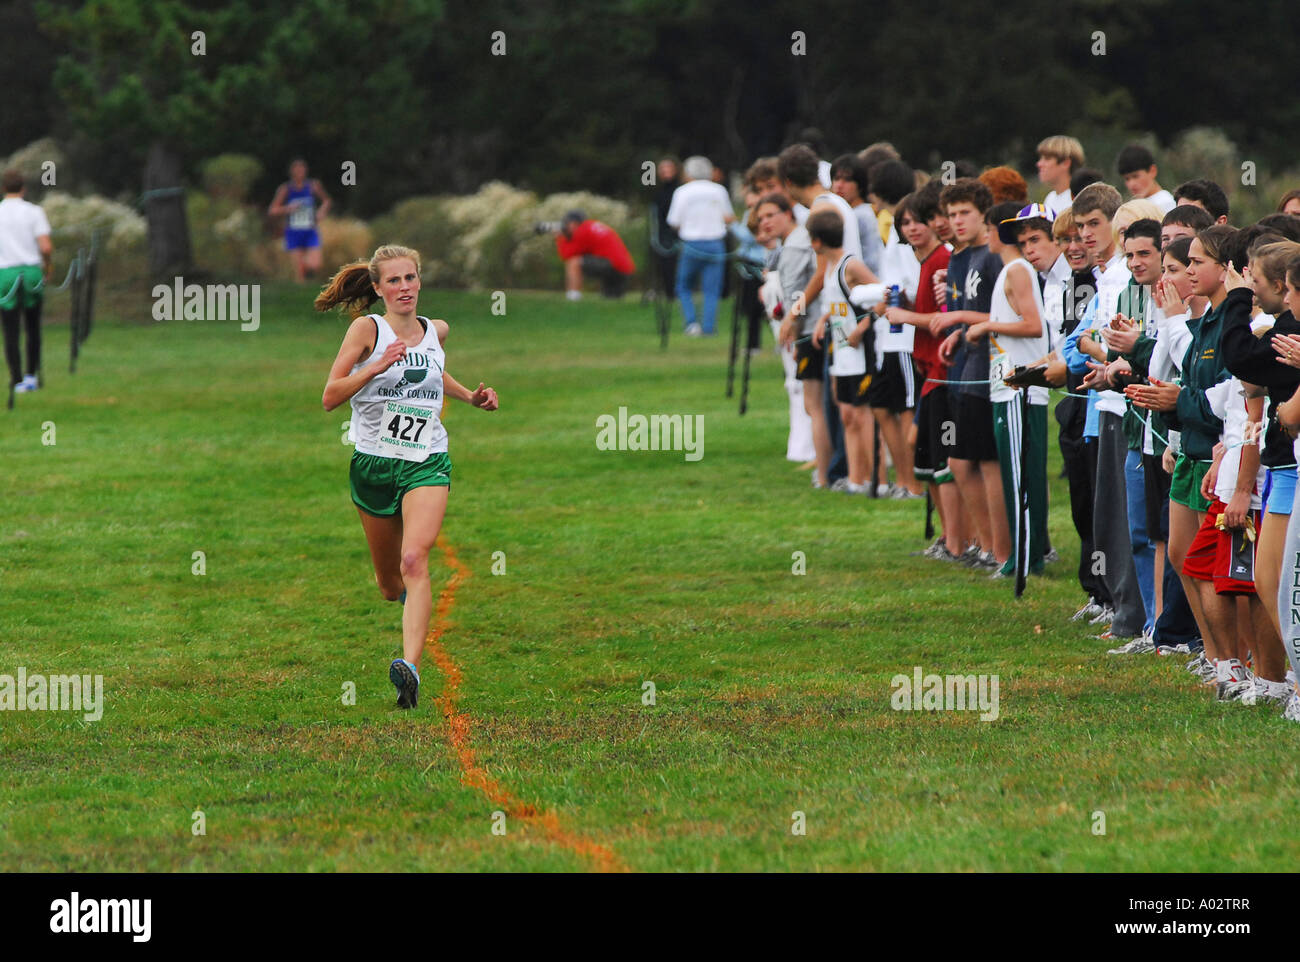 A lone runner makes her way past the cheering crowds during a Cross Country Event - Stock Image